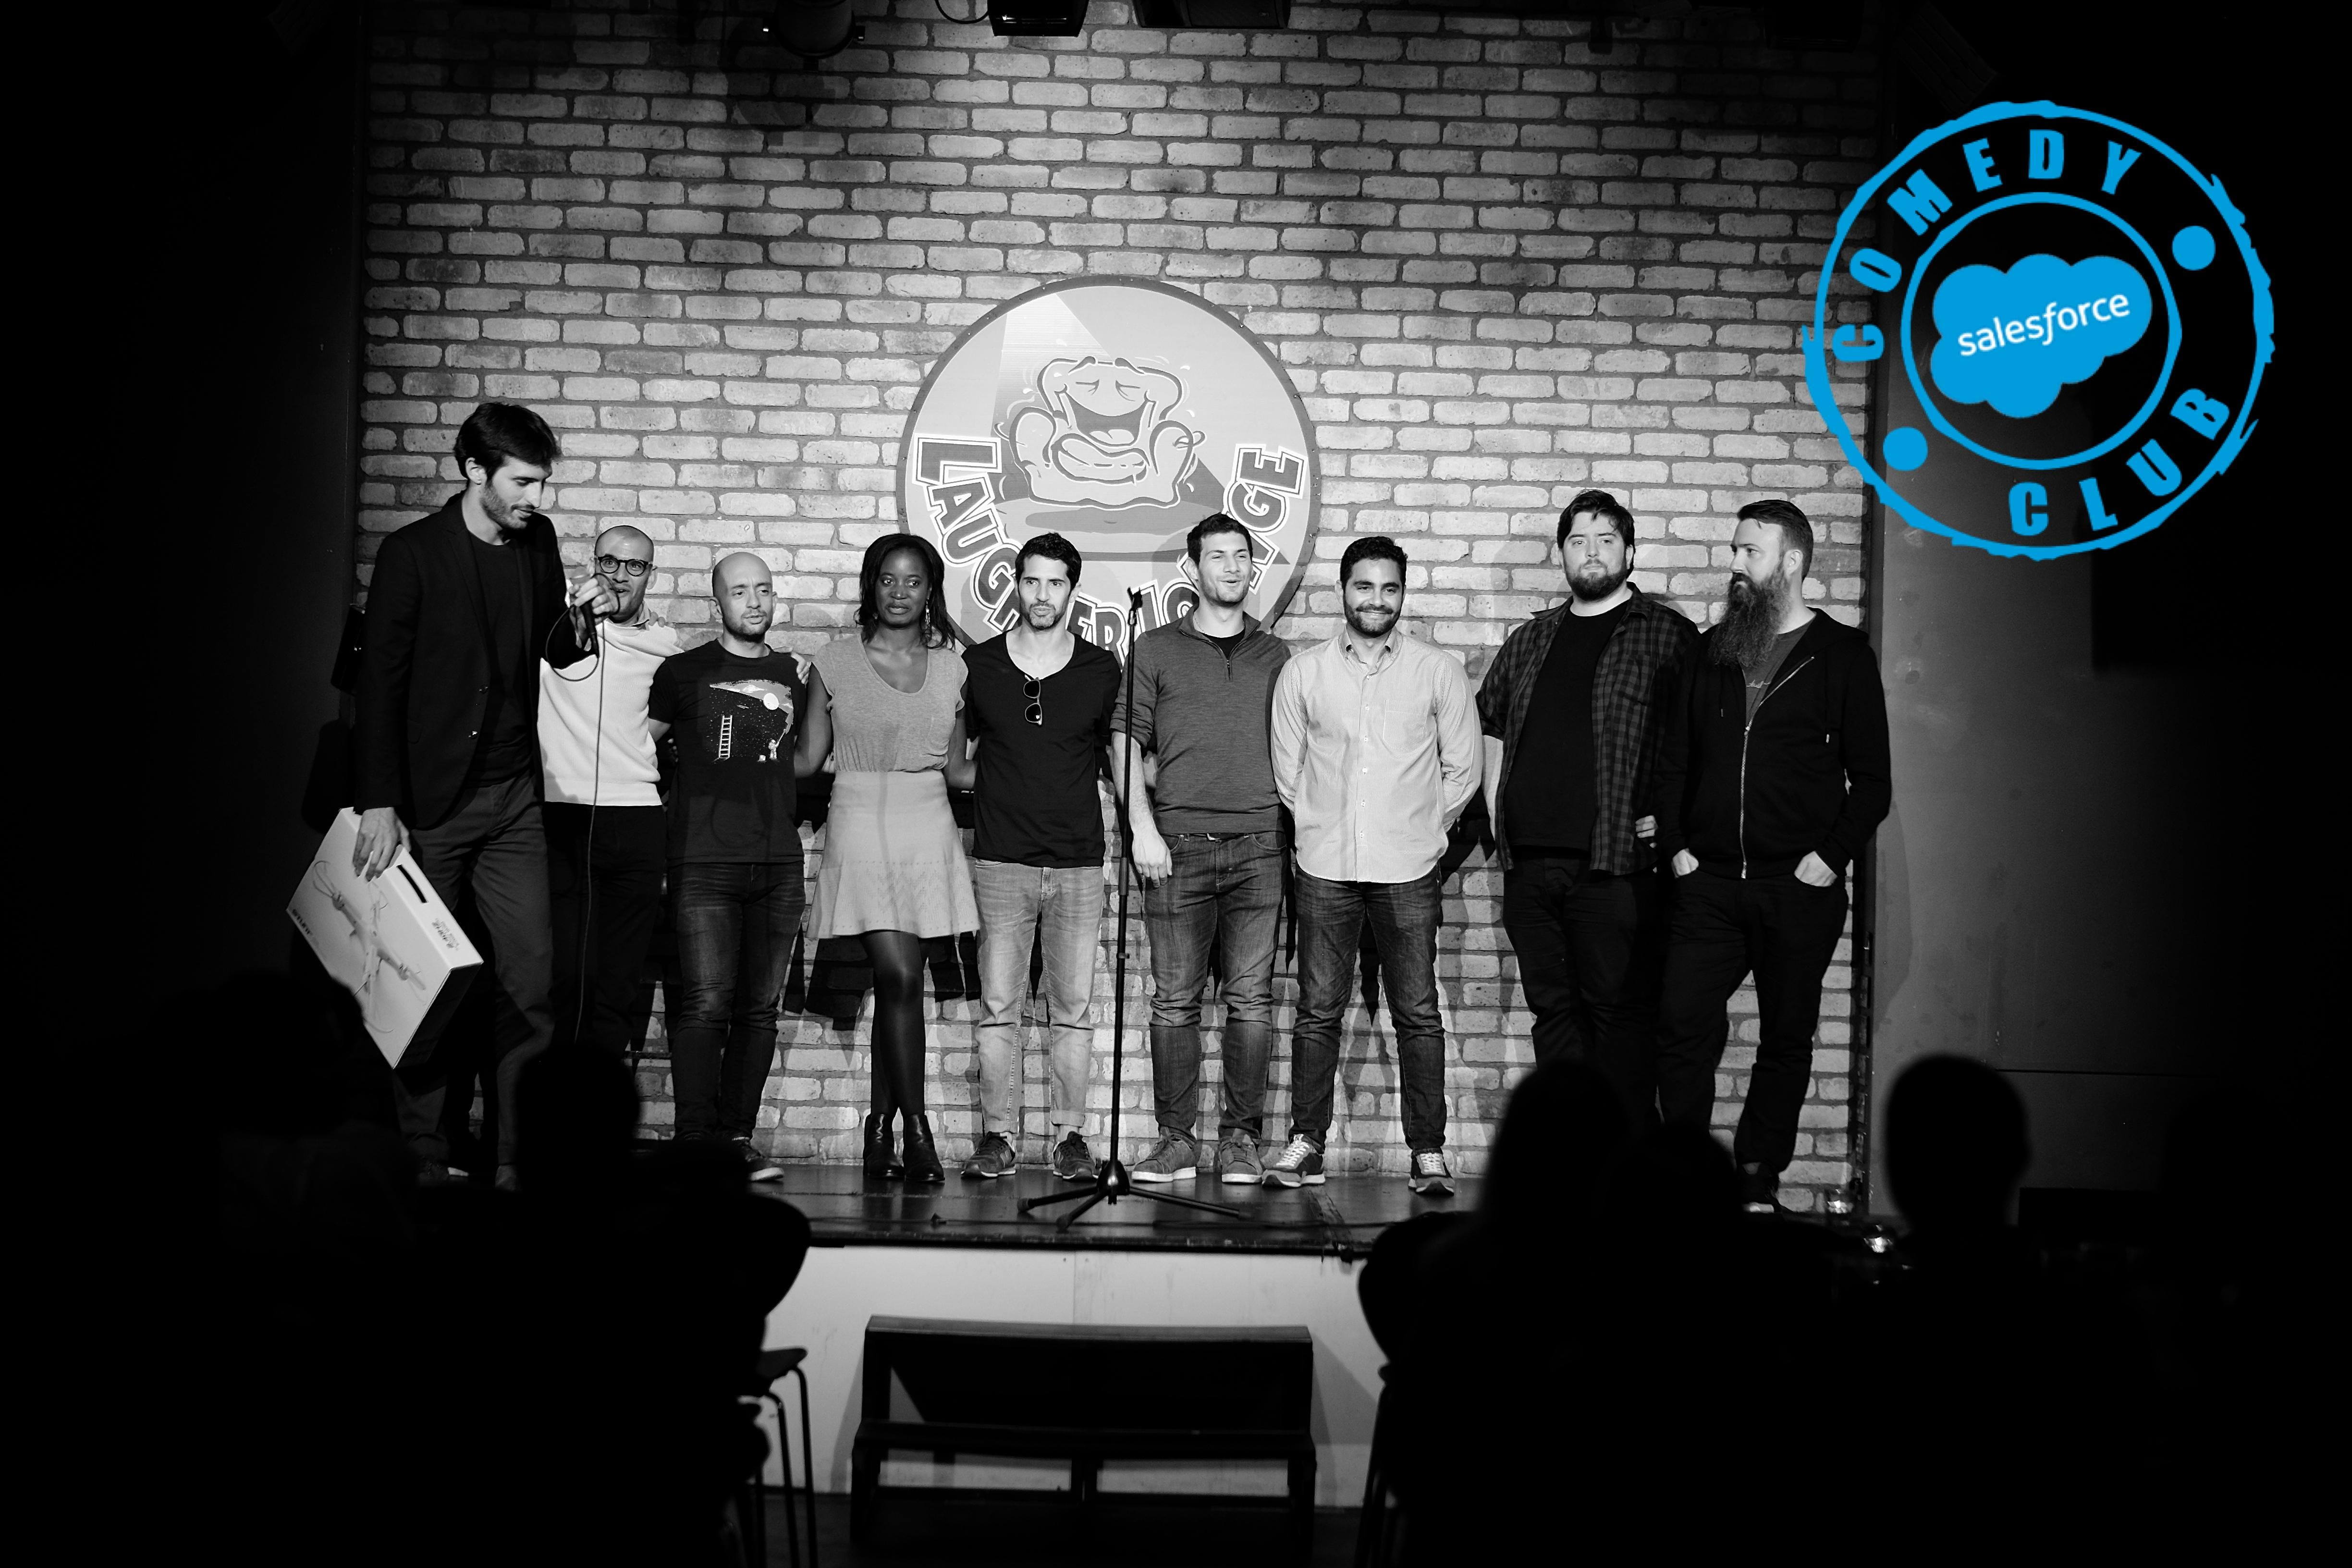 Salesforce Comedy Club Dublin - 2nd Edition